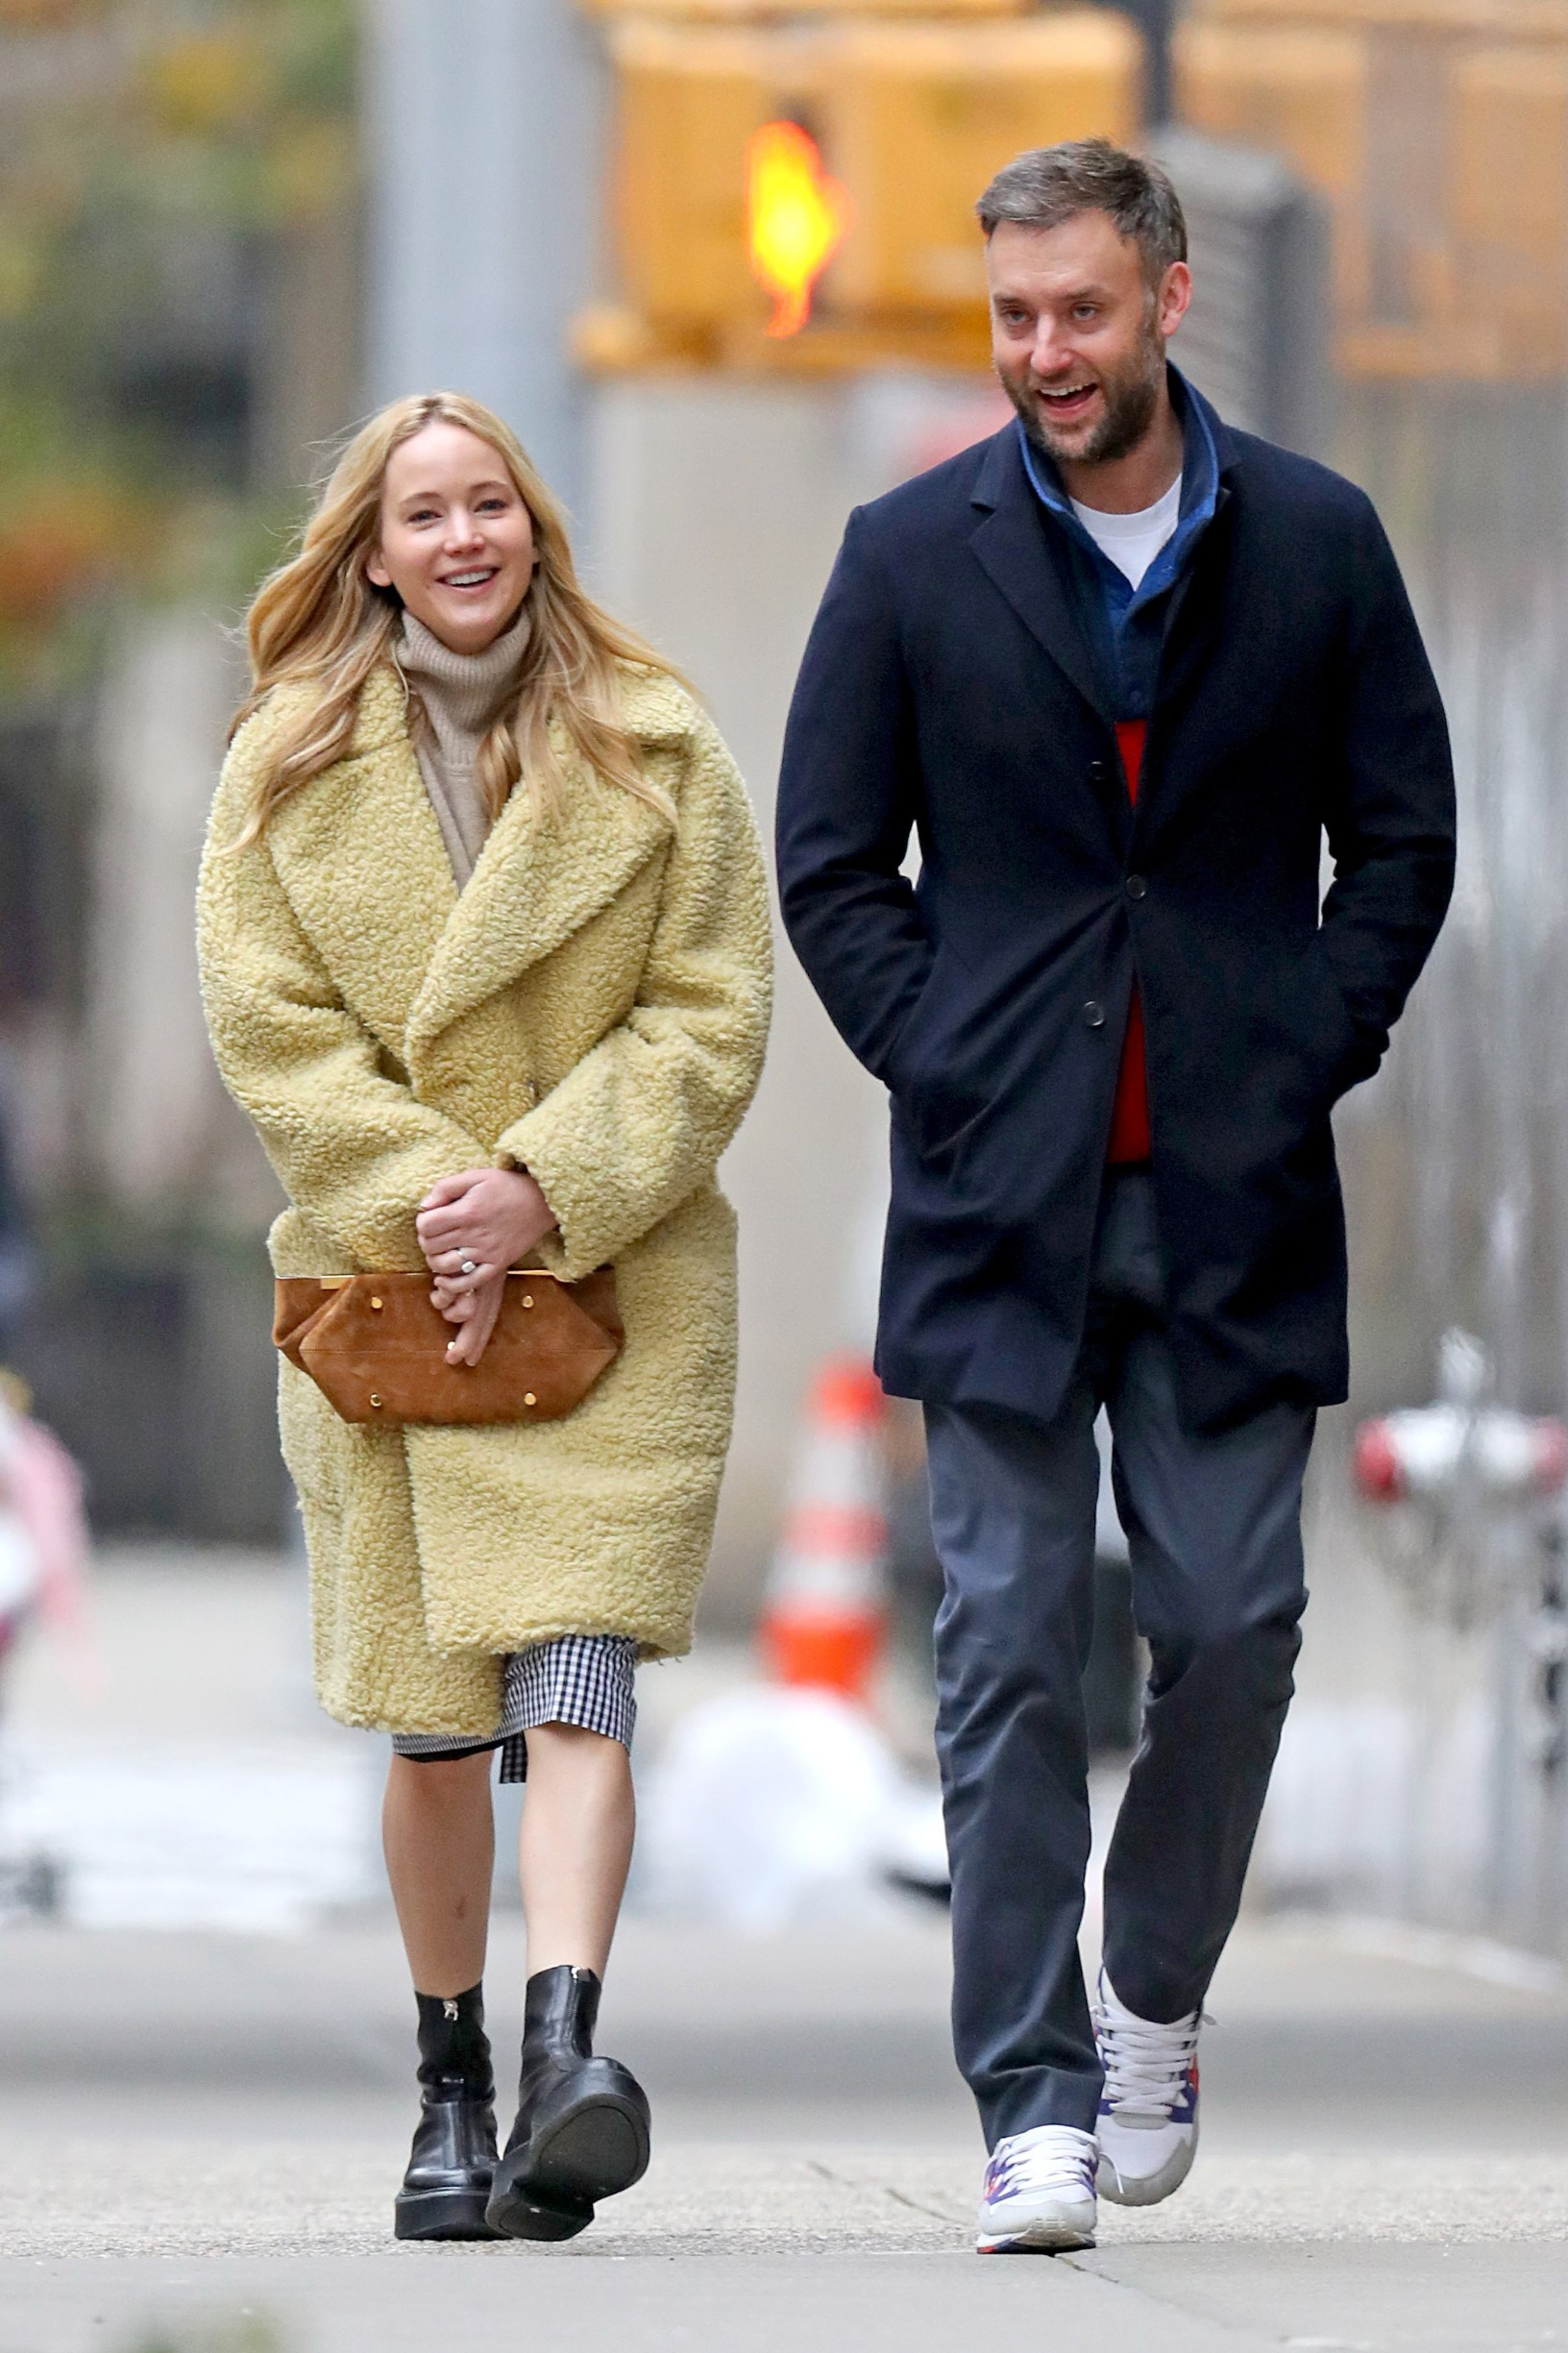 12/16/2019 EXCLUSIVE: Jennifer Lawrence and Cooke Maroney head to the MET Museum in New York City. The 29 year old actress wore an oversized yellow Burberry 'Willingstone' teddy coat, checkered dress, The Row black leather ankle boots, and carried a Khaite 'Aimee Clutch' in caramel suede., Image: 488609182, License: Rights-managed, Restrictions: Exclusive NO usage without agreed price and terms. Please contact sales@theimagedirect.com, Model Release: no, Credit line: TheImageDirect.com / The Image Direct / Profimedia